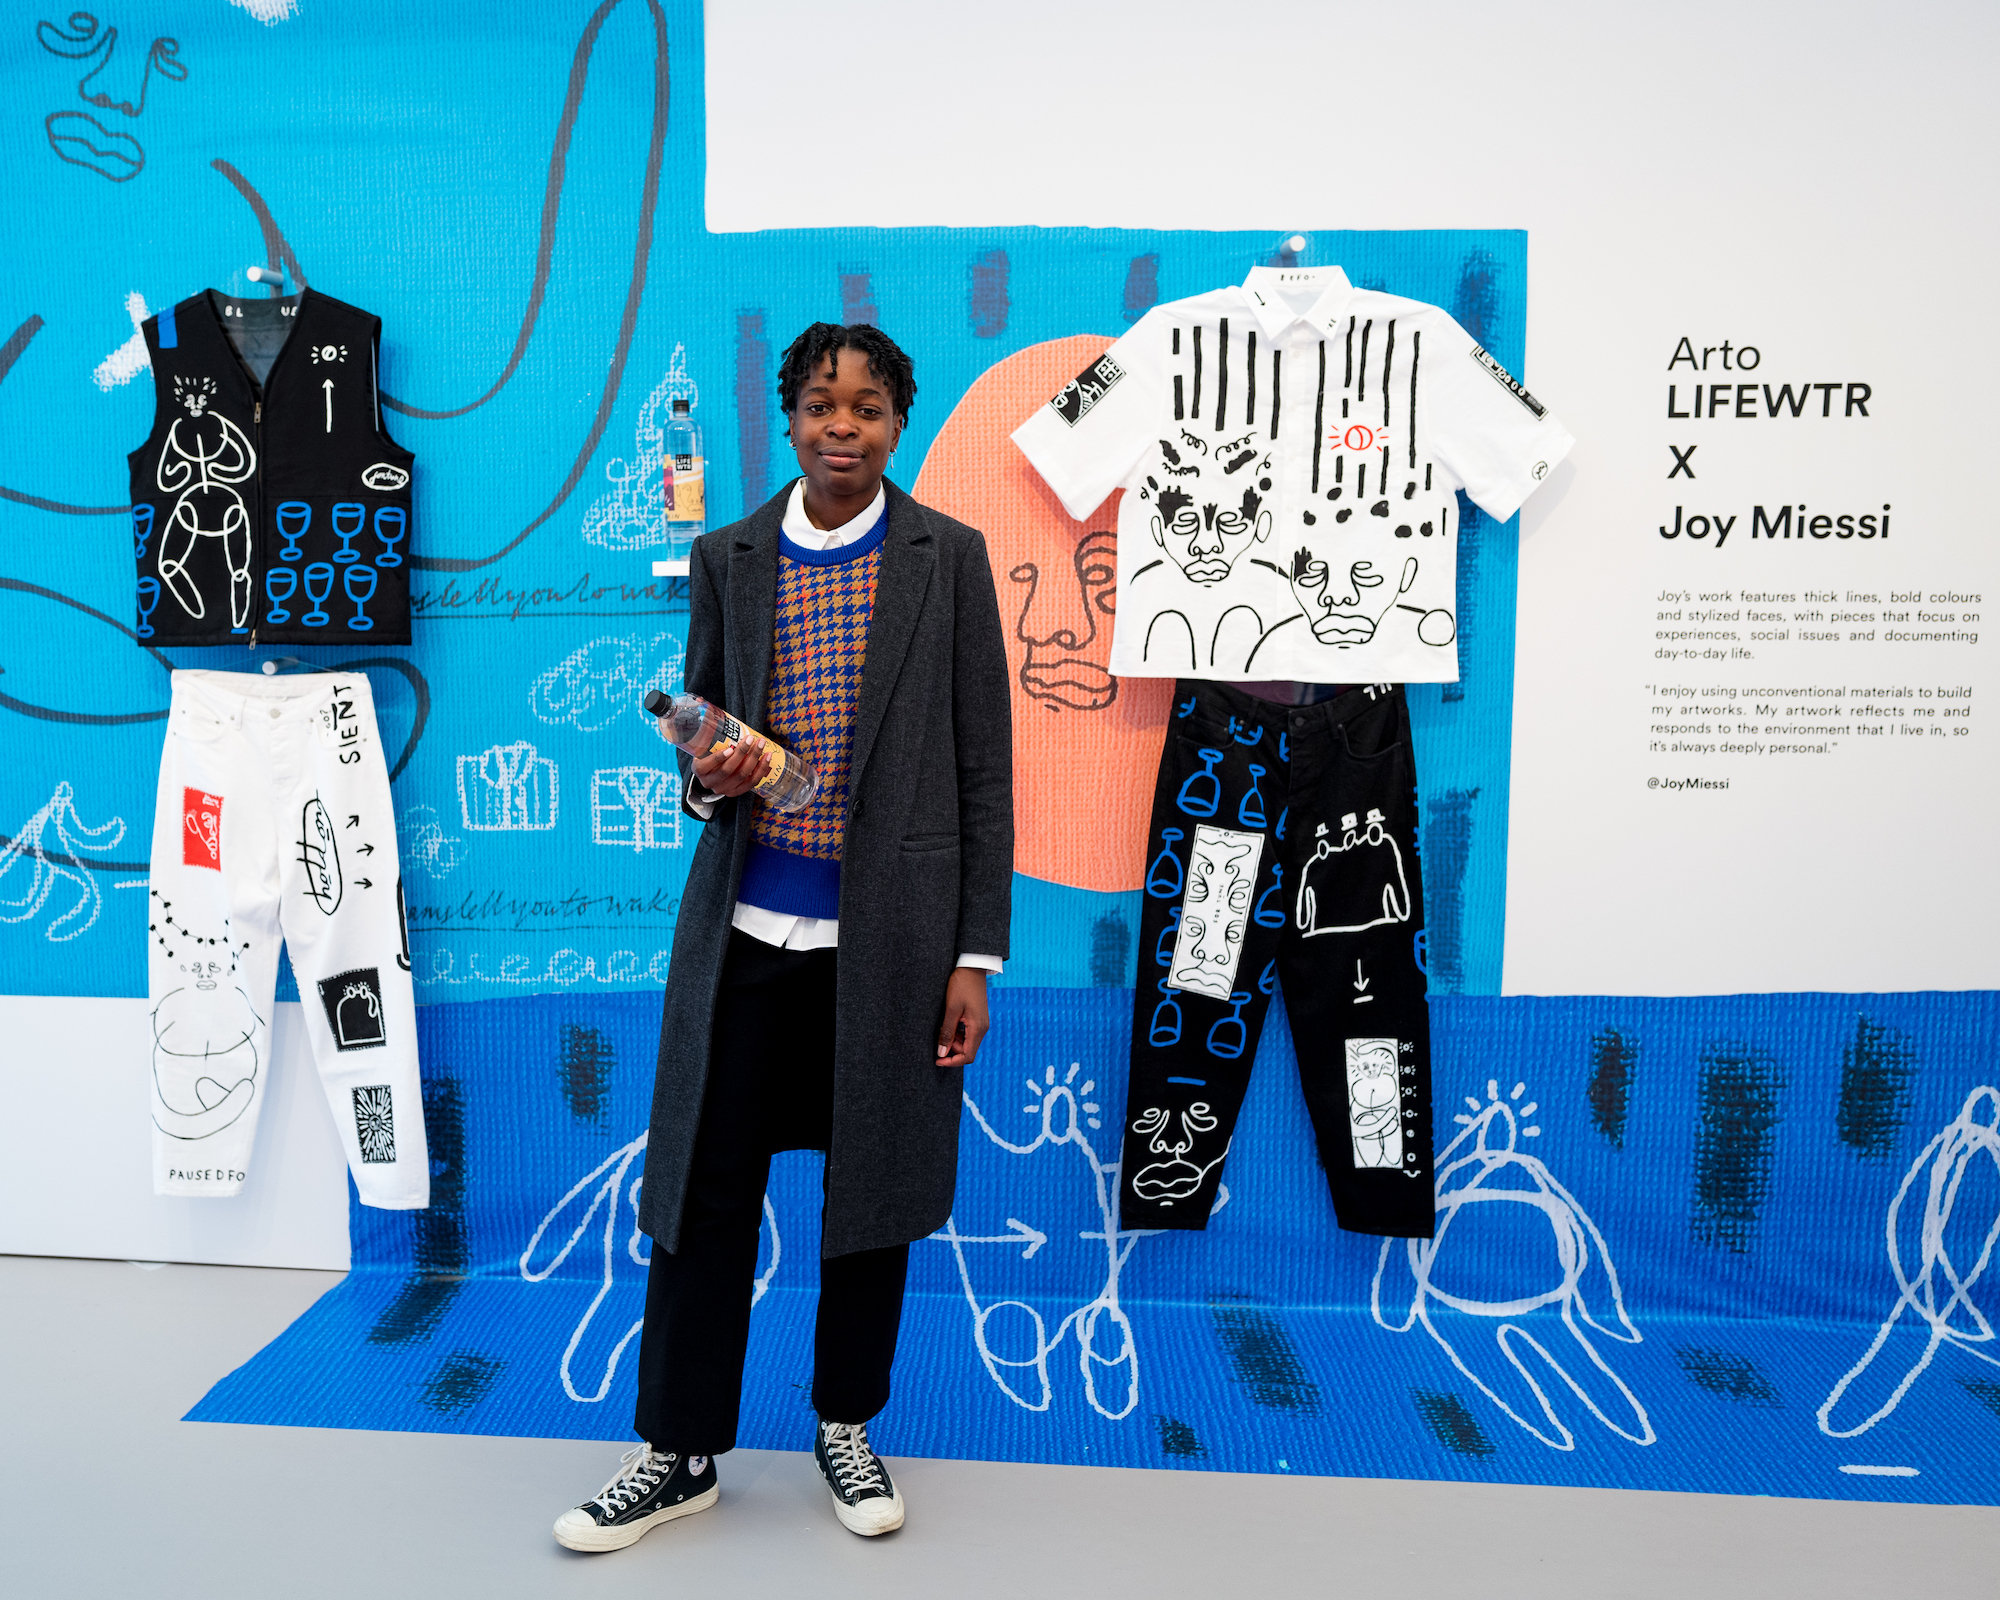 Arto LIFEWTR x Frieze London: 2019